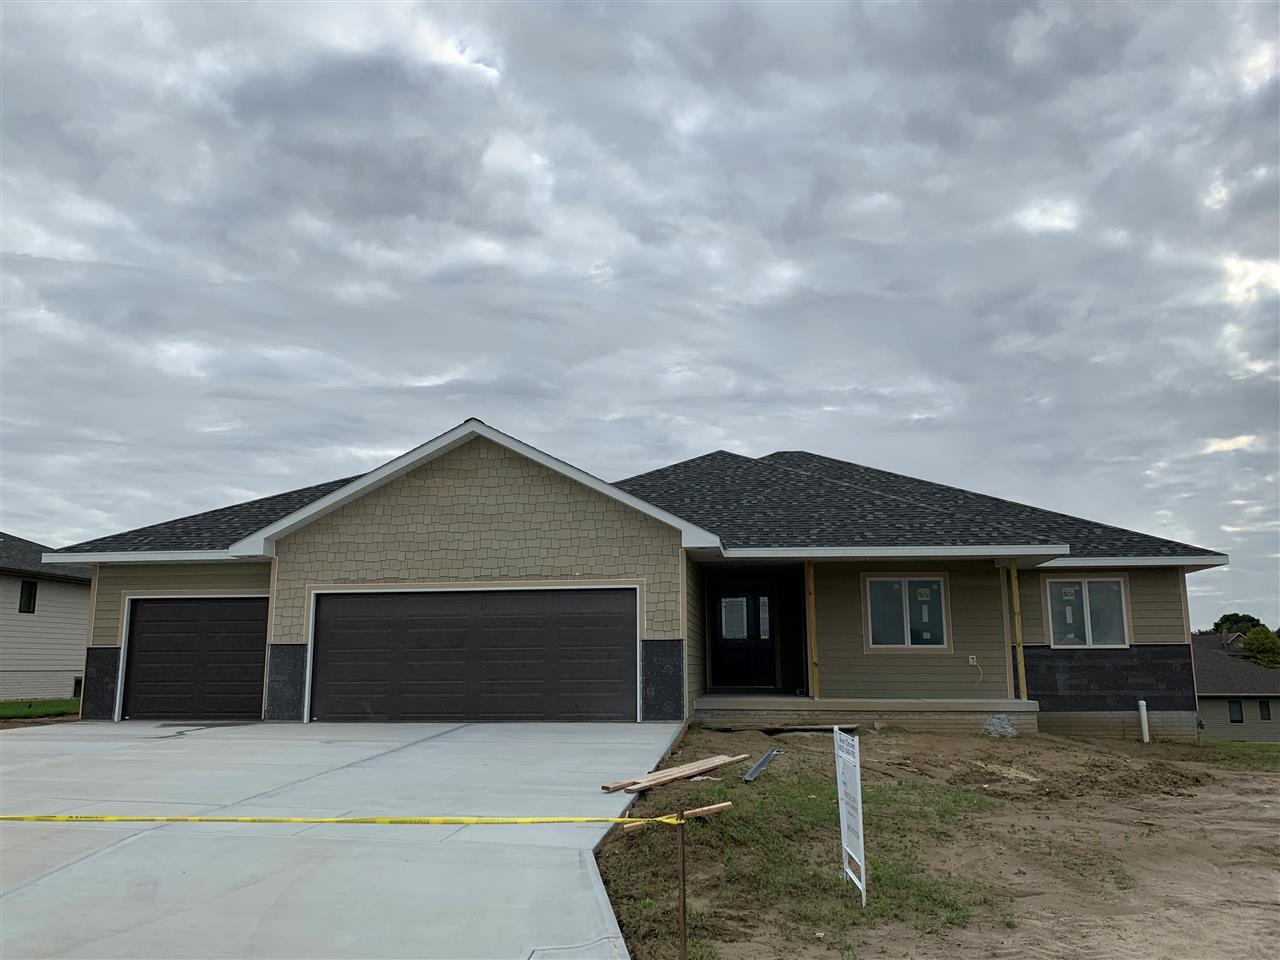 Brand new craftsman ranch style home in Wyndham Hills Subdivision. Open floor plan with corner fireplace. Nice pantry in kitchen. Large laundry with drop station for backpacks, etc. Large deck with stairs to big backyard. Finished walk out lower level.